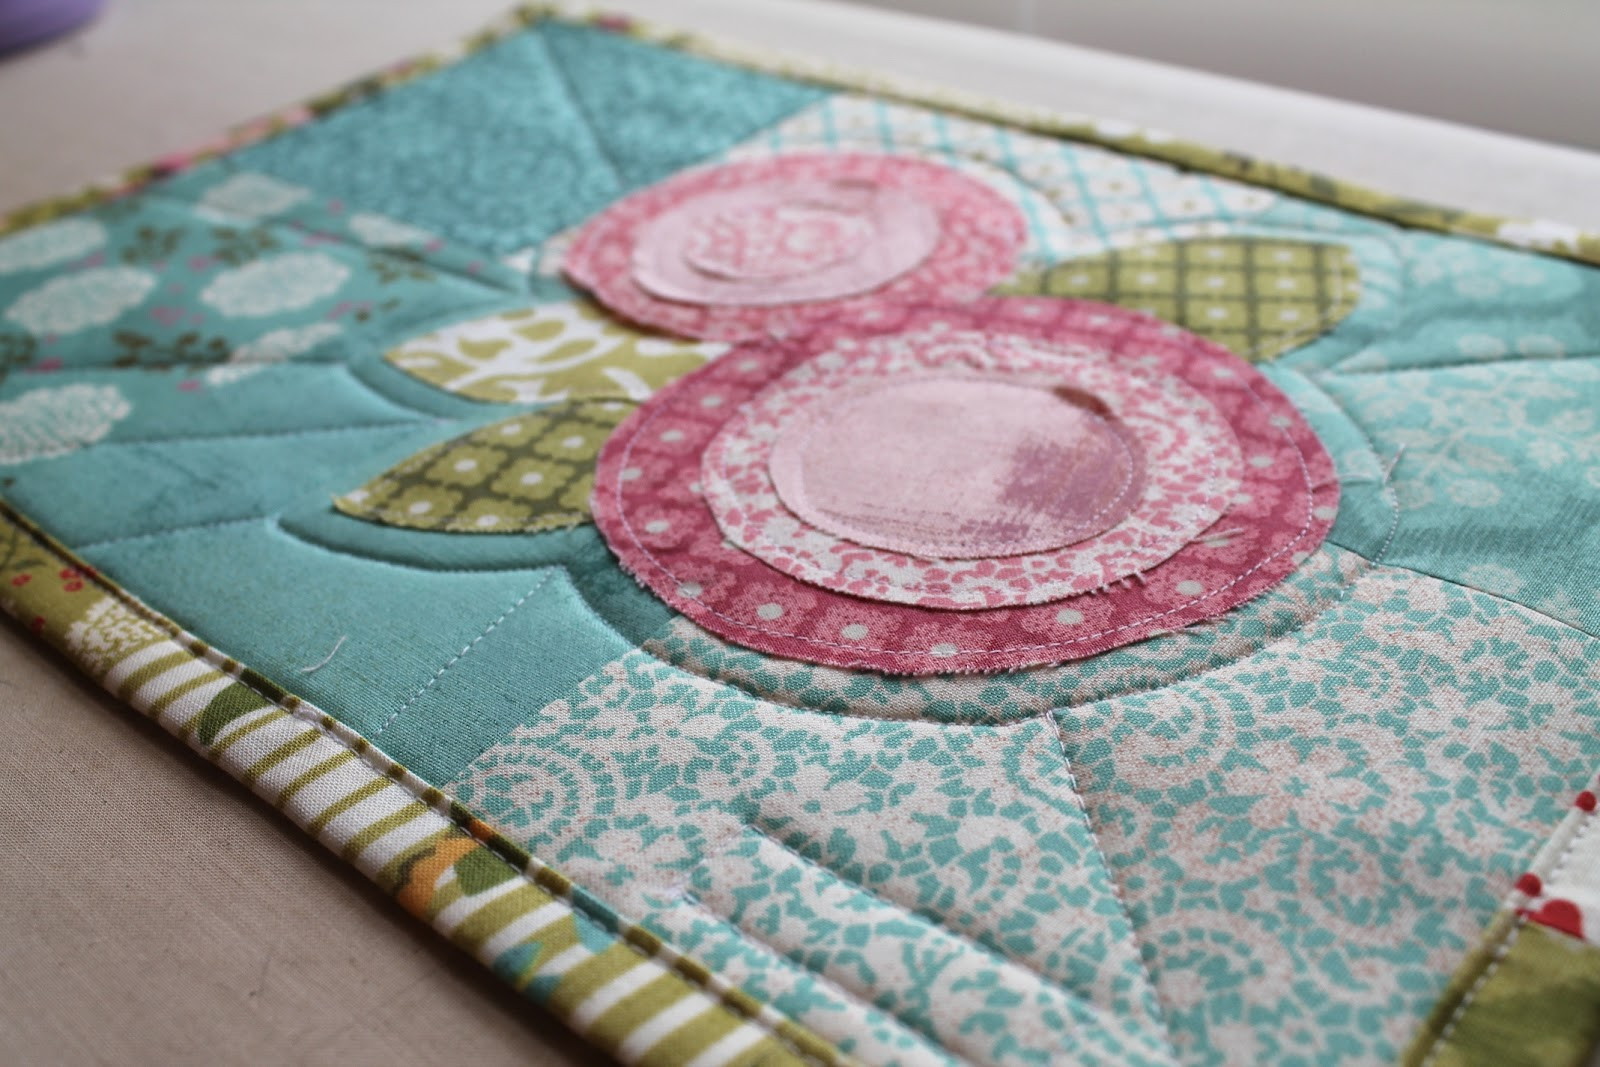 notions little for no product pack charm foot pattern quilt waste